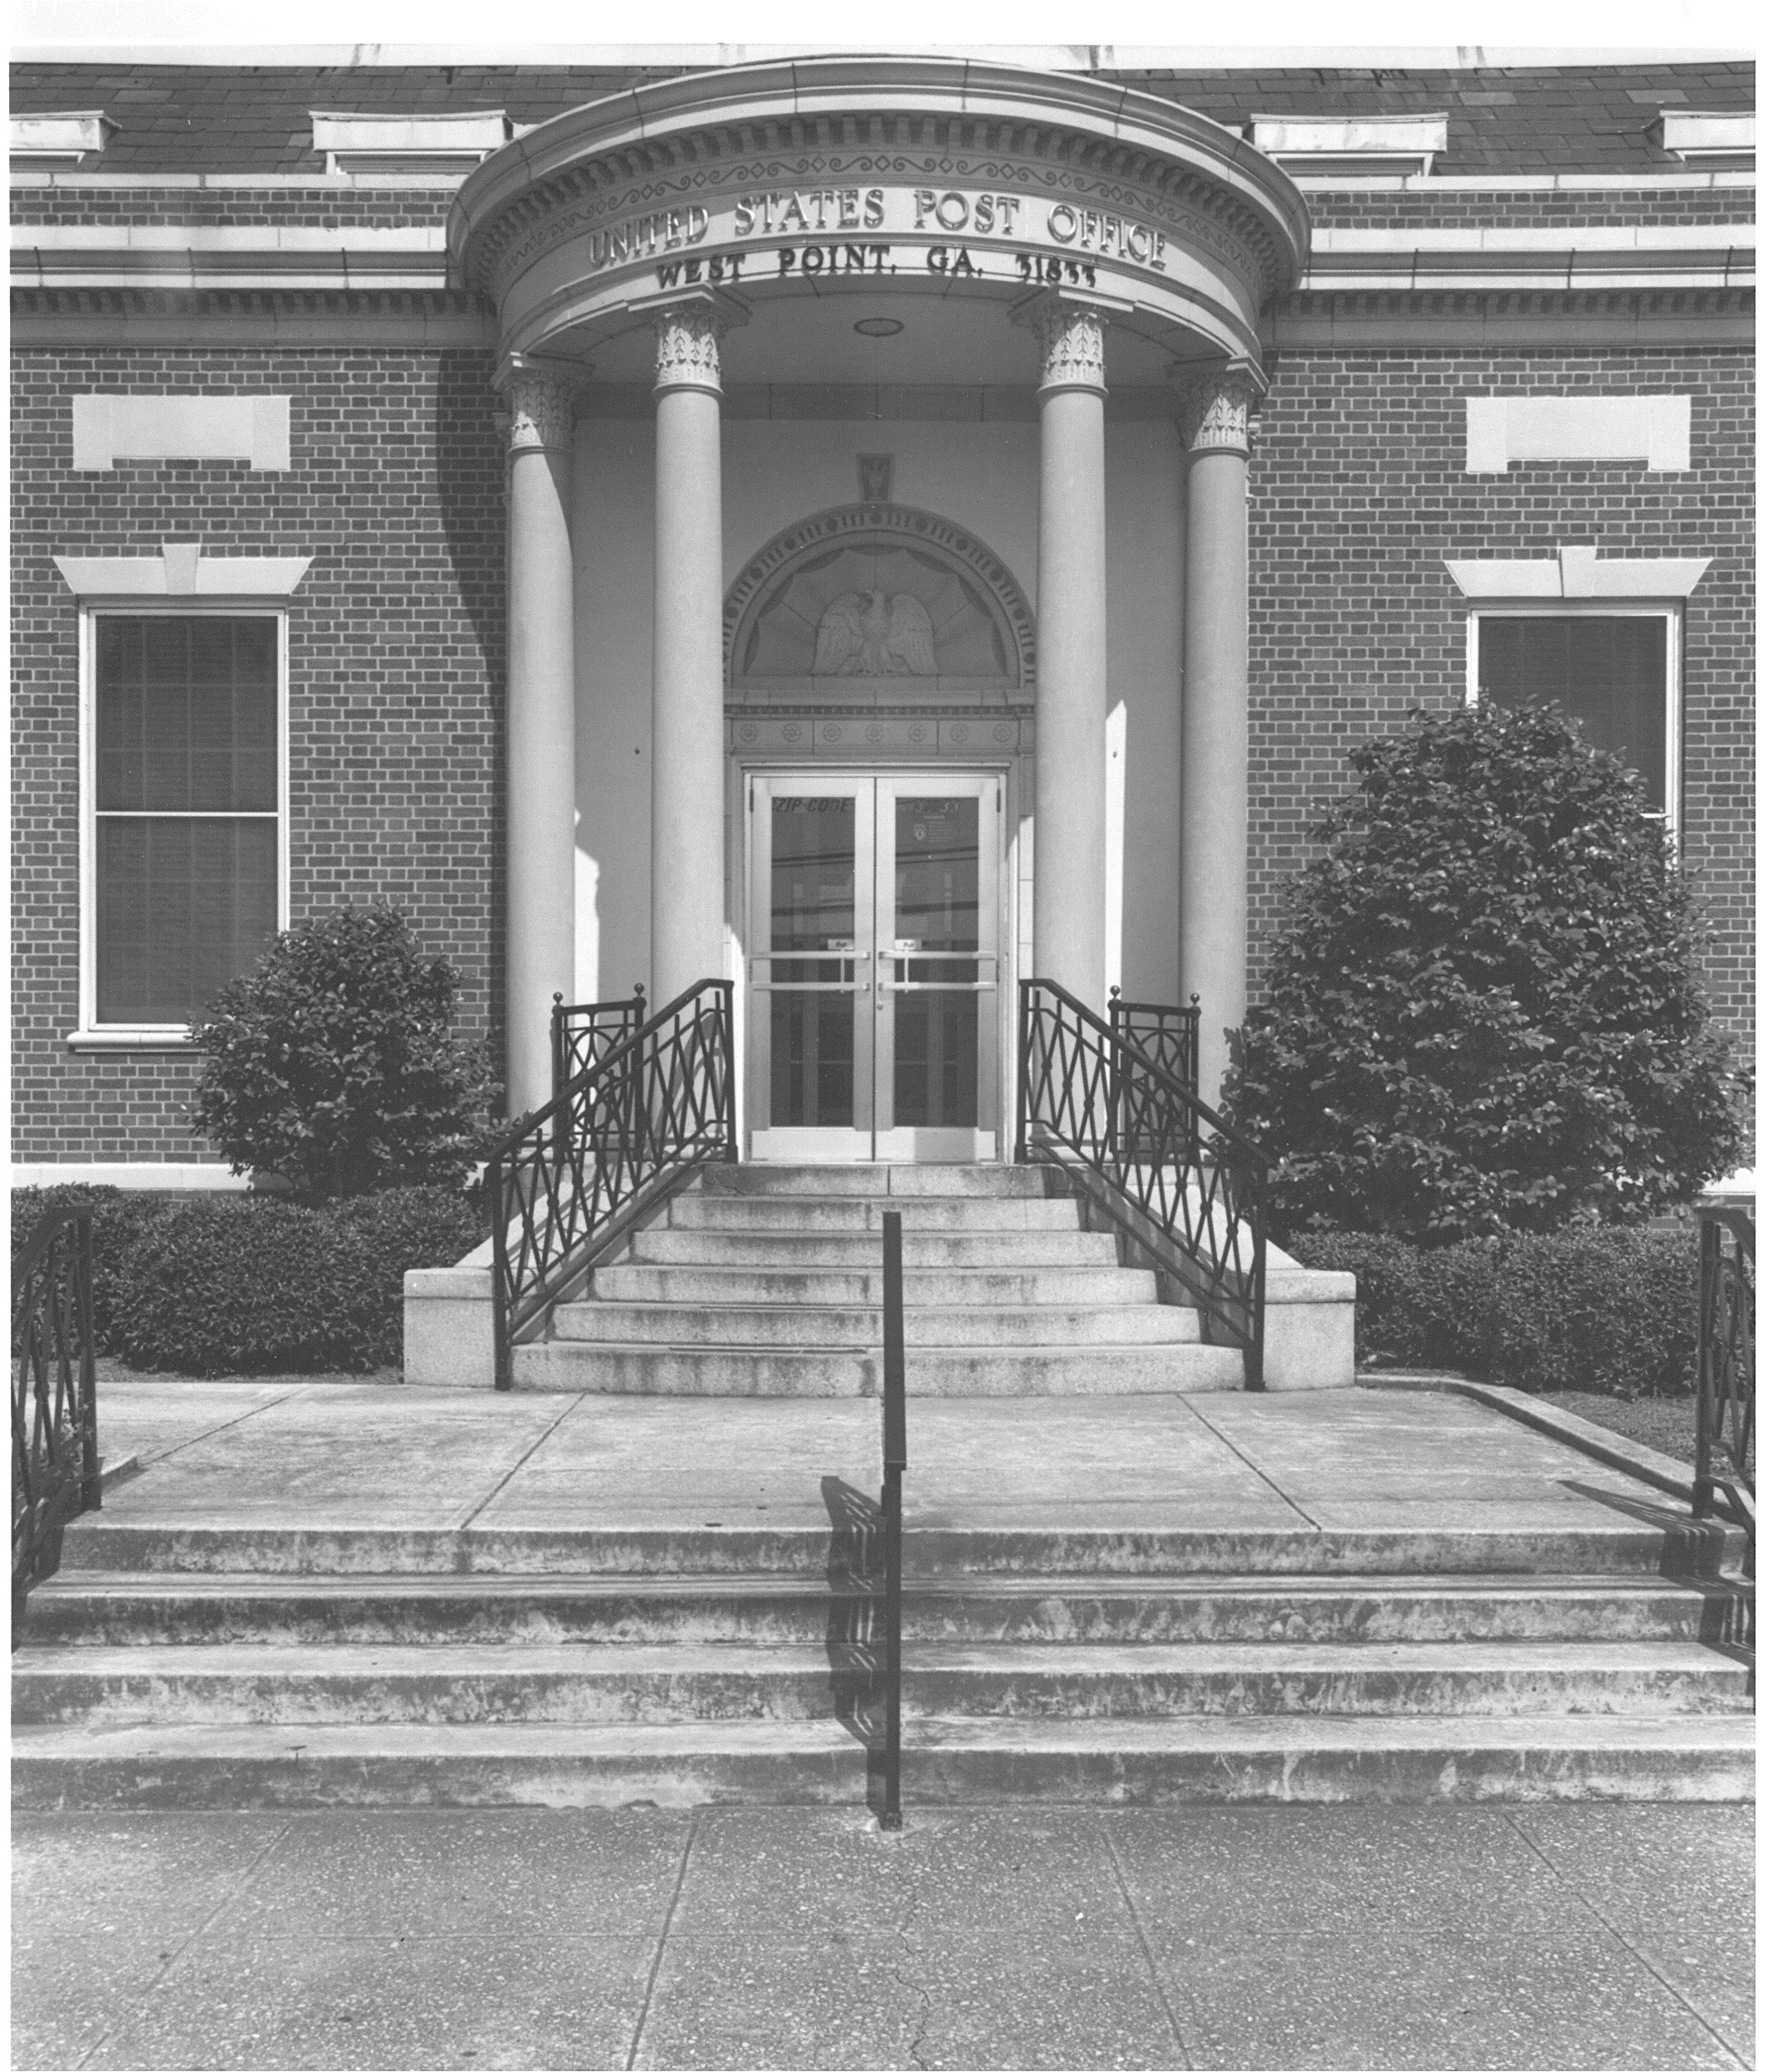 Historical image of West Point, GA's Post Office provided by Troup County Archives